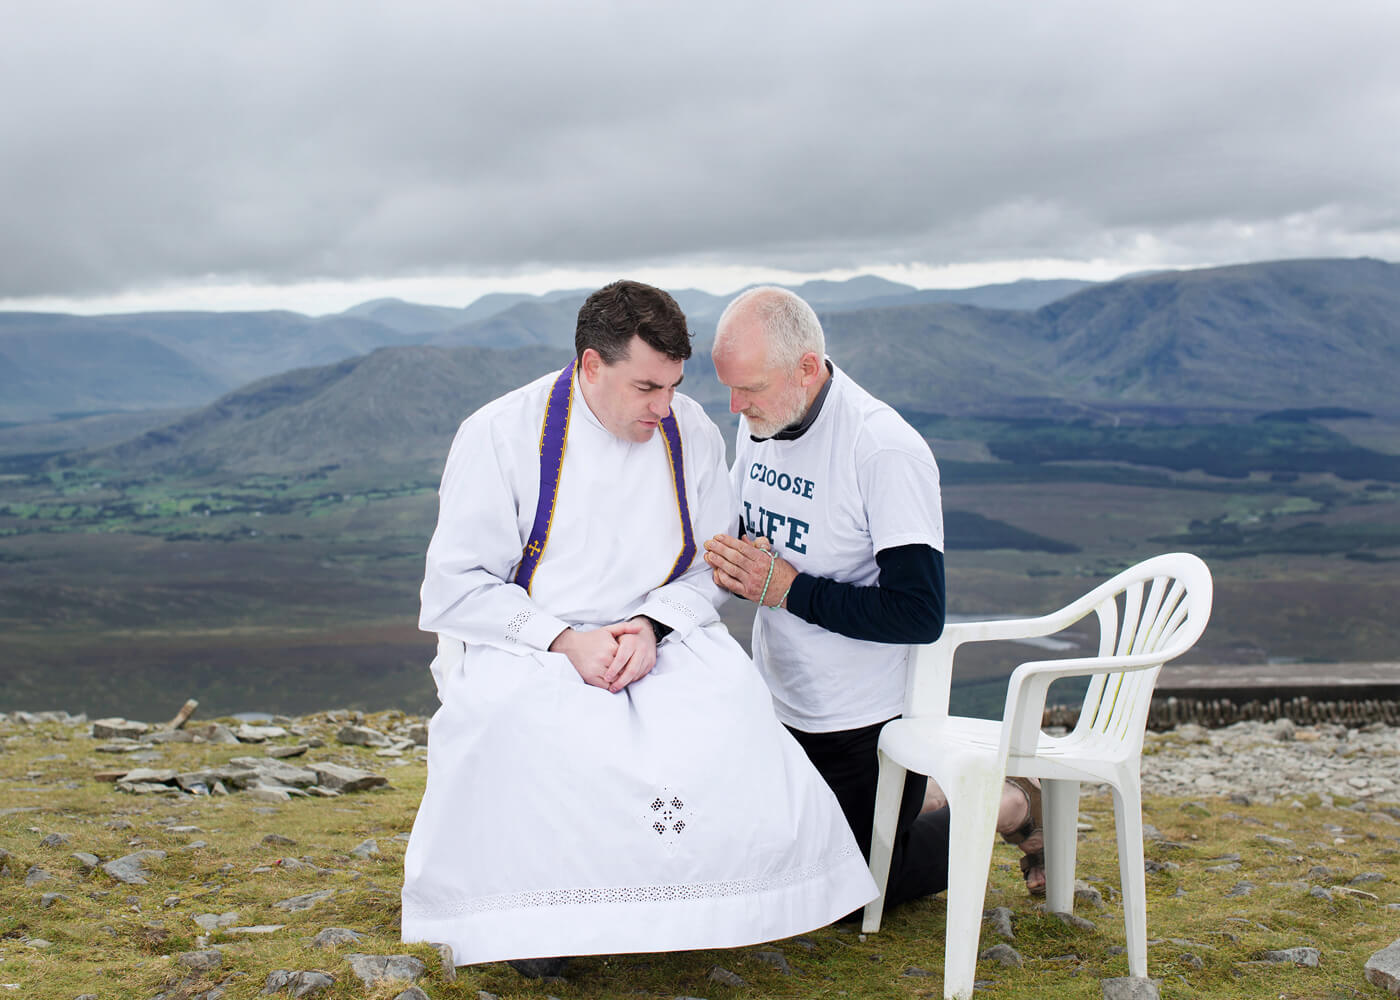 Climb of Atonement, Croagh Patrick, County Mayo.  Aidan begs forgiveness for the sins of men that may have resulted in abortion at the summit of holy mountain Croagh Patrick.